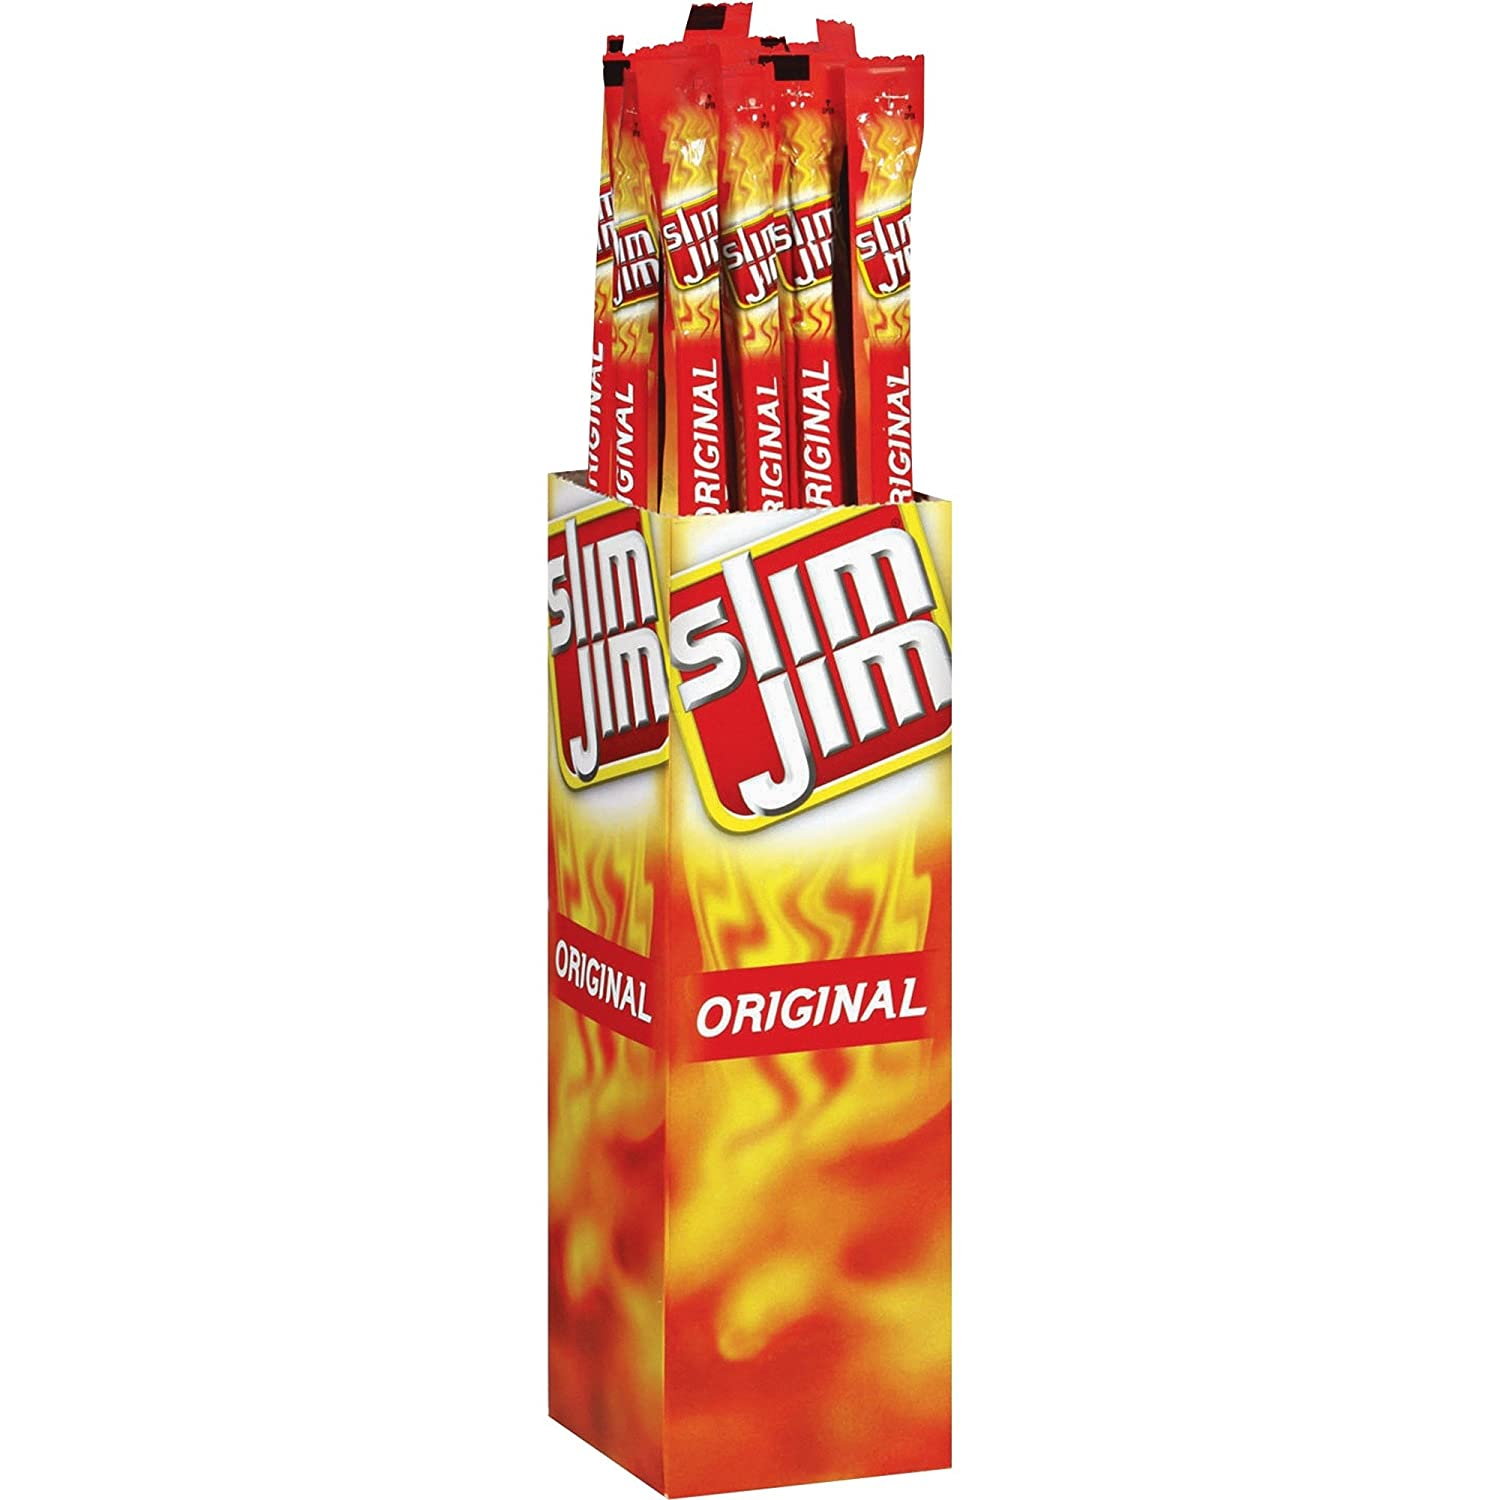 CNG1170 - Slim Jim Giant Snack Mix